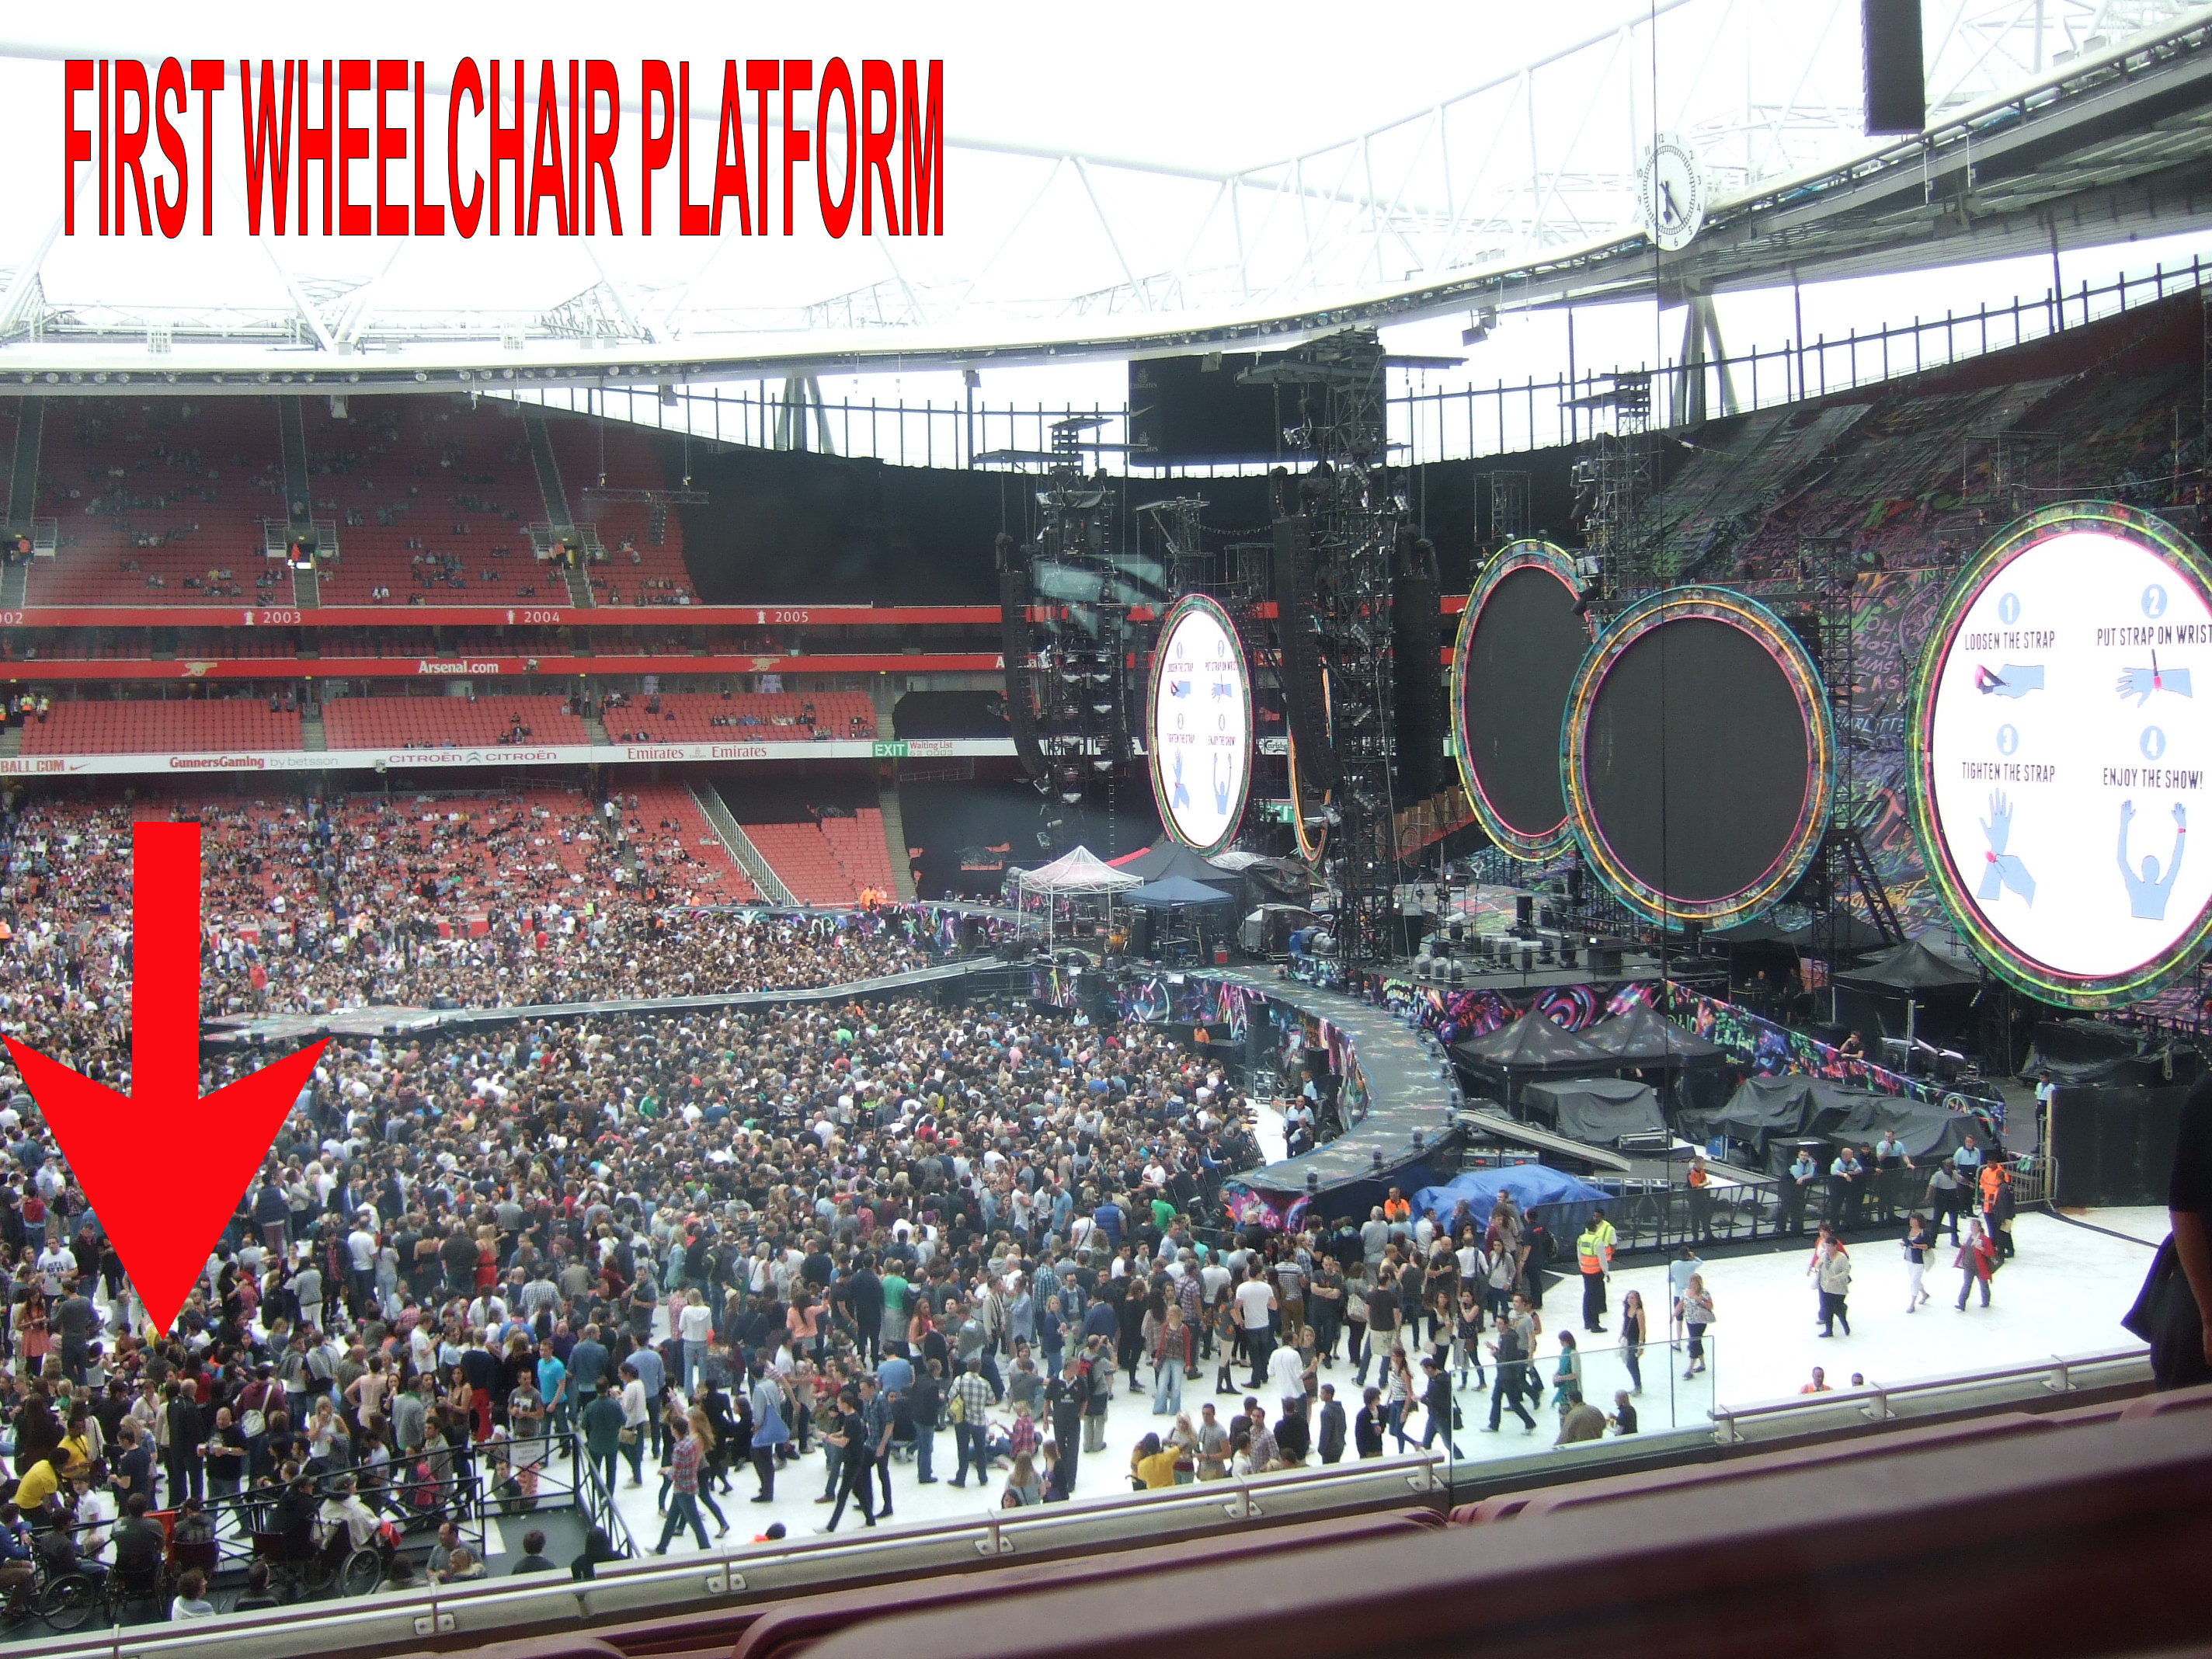 Photo showing front section of arena, with the stage and the front of the wheelchair platform